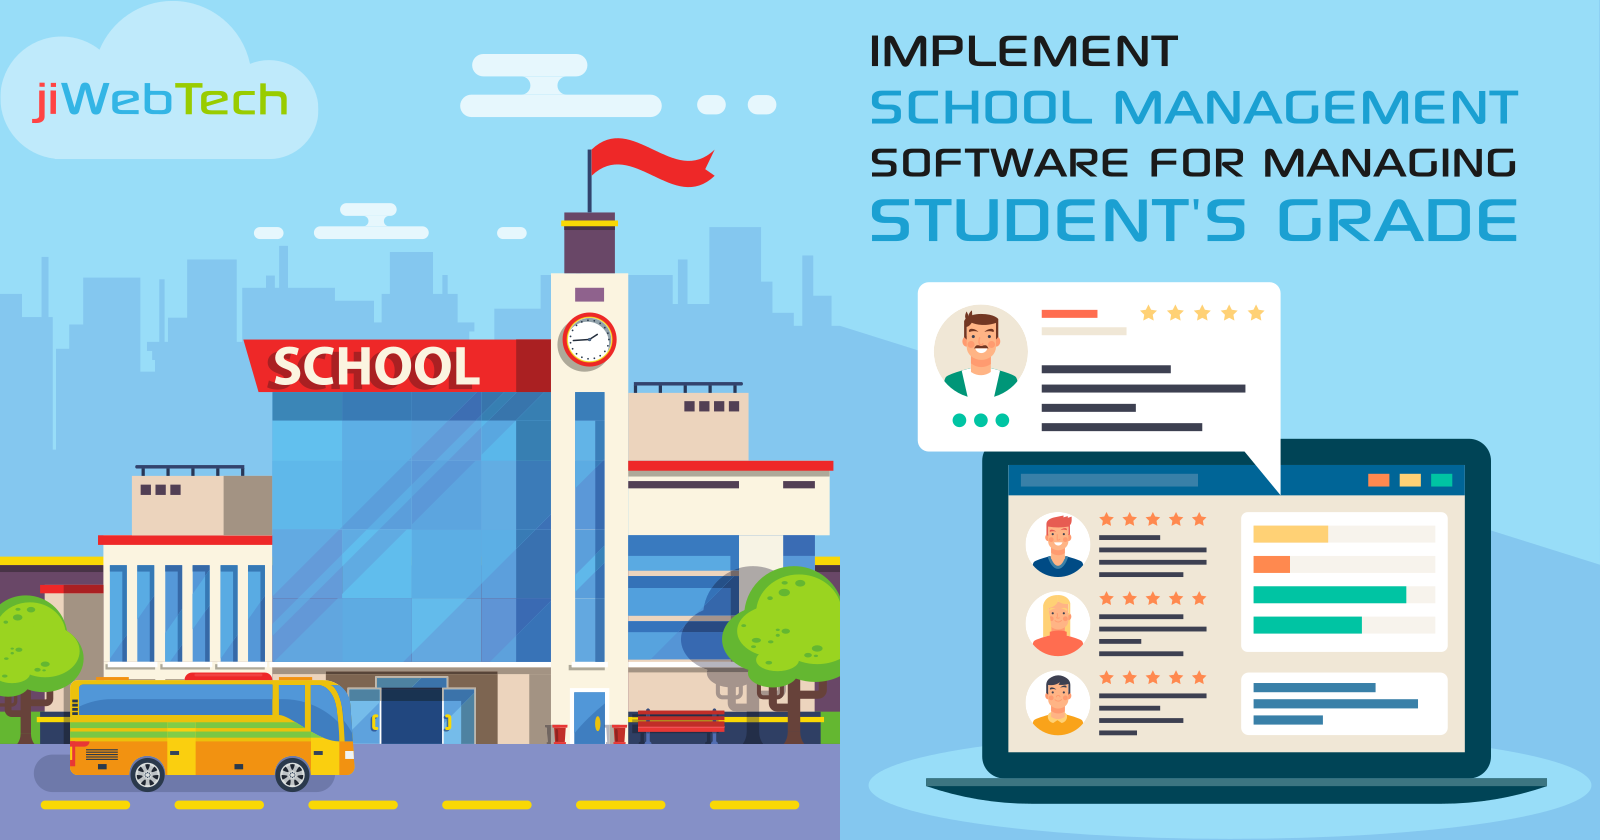 Implement School Management Software For Managing Student's Grade